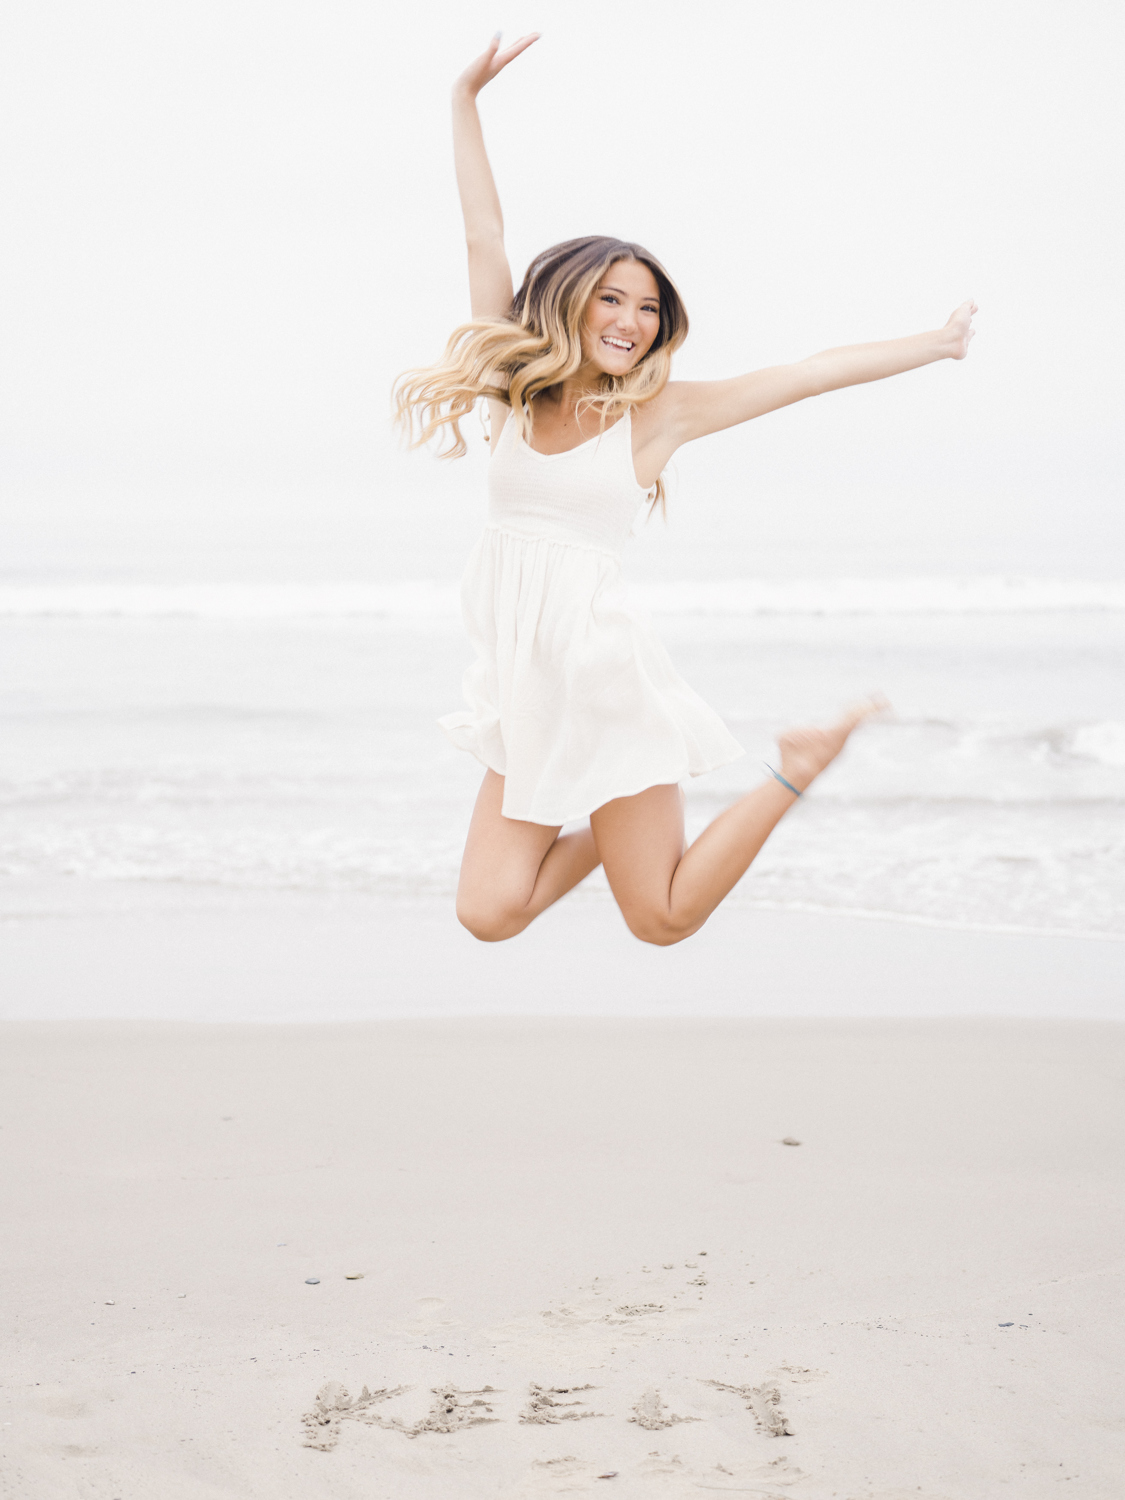 Girl at the beach jumping up in the air with her name written in the sand in front of her